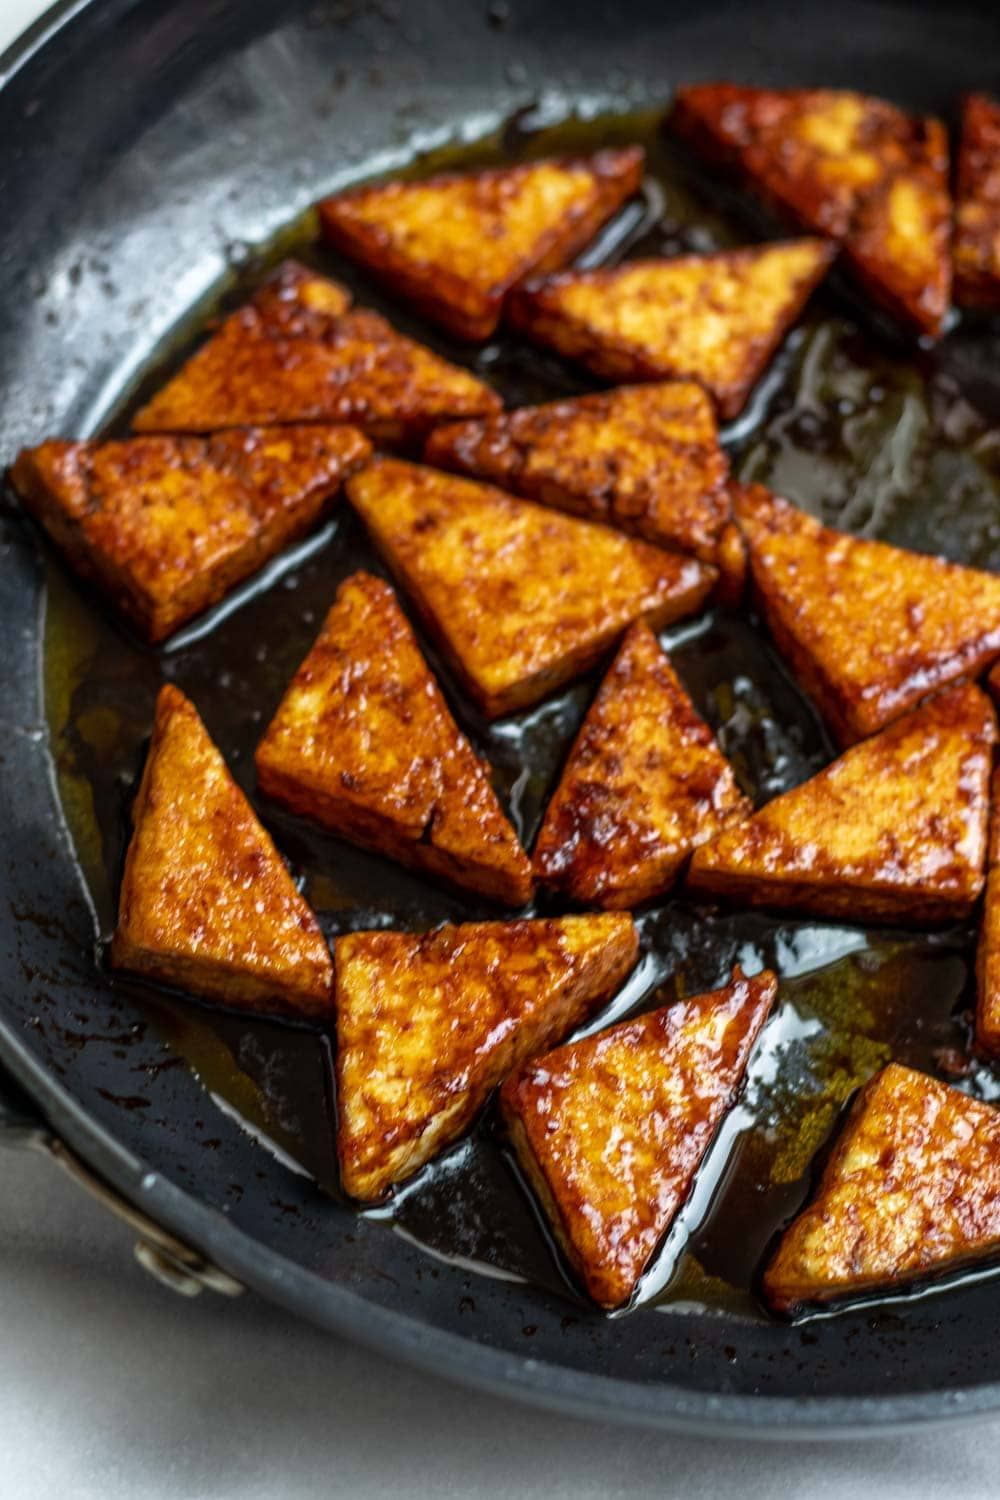 Spicy tofu in the pan with sauce.